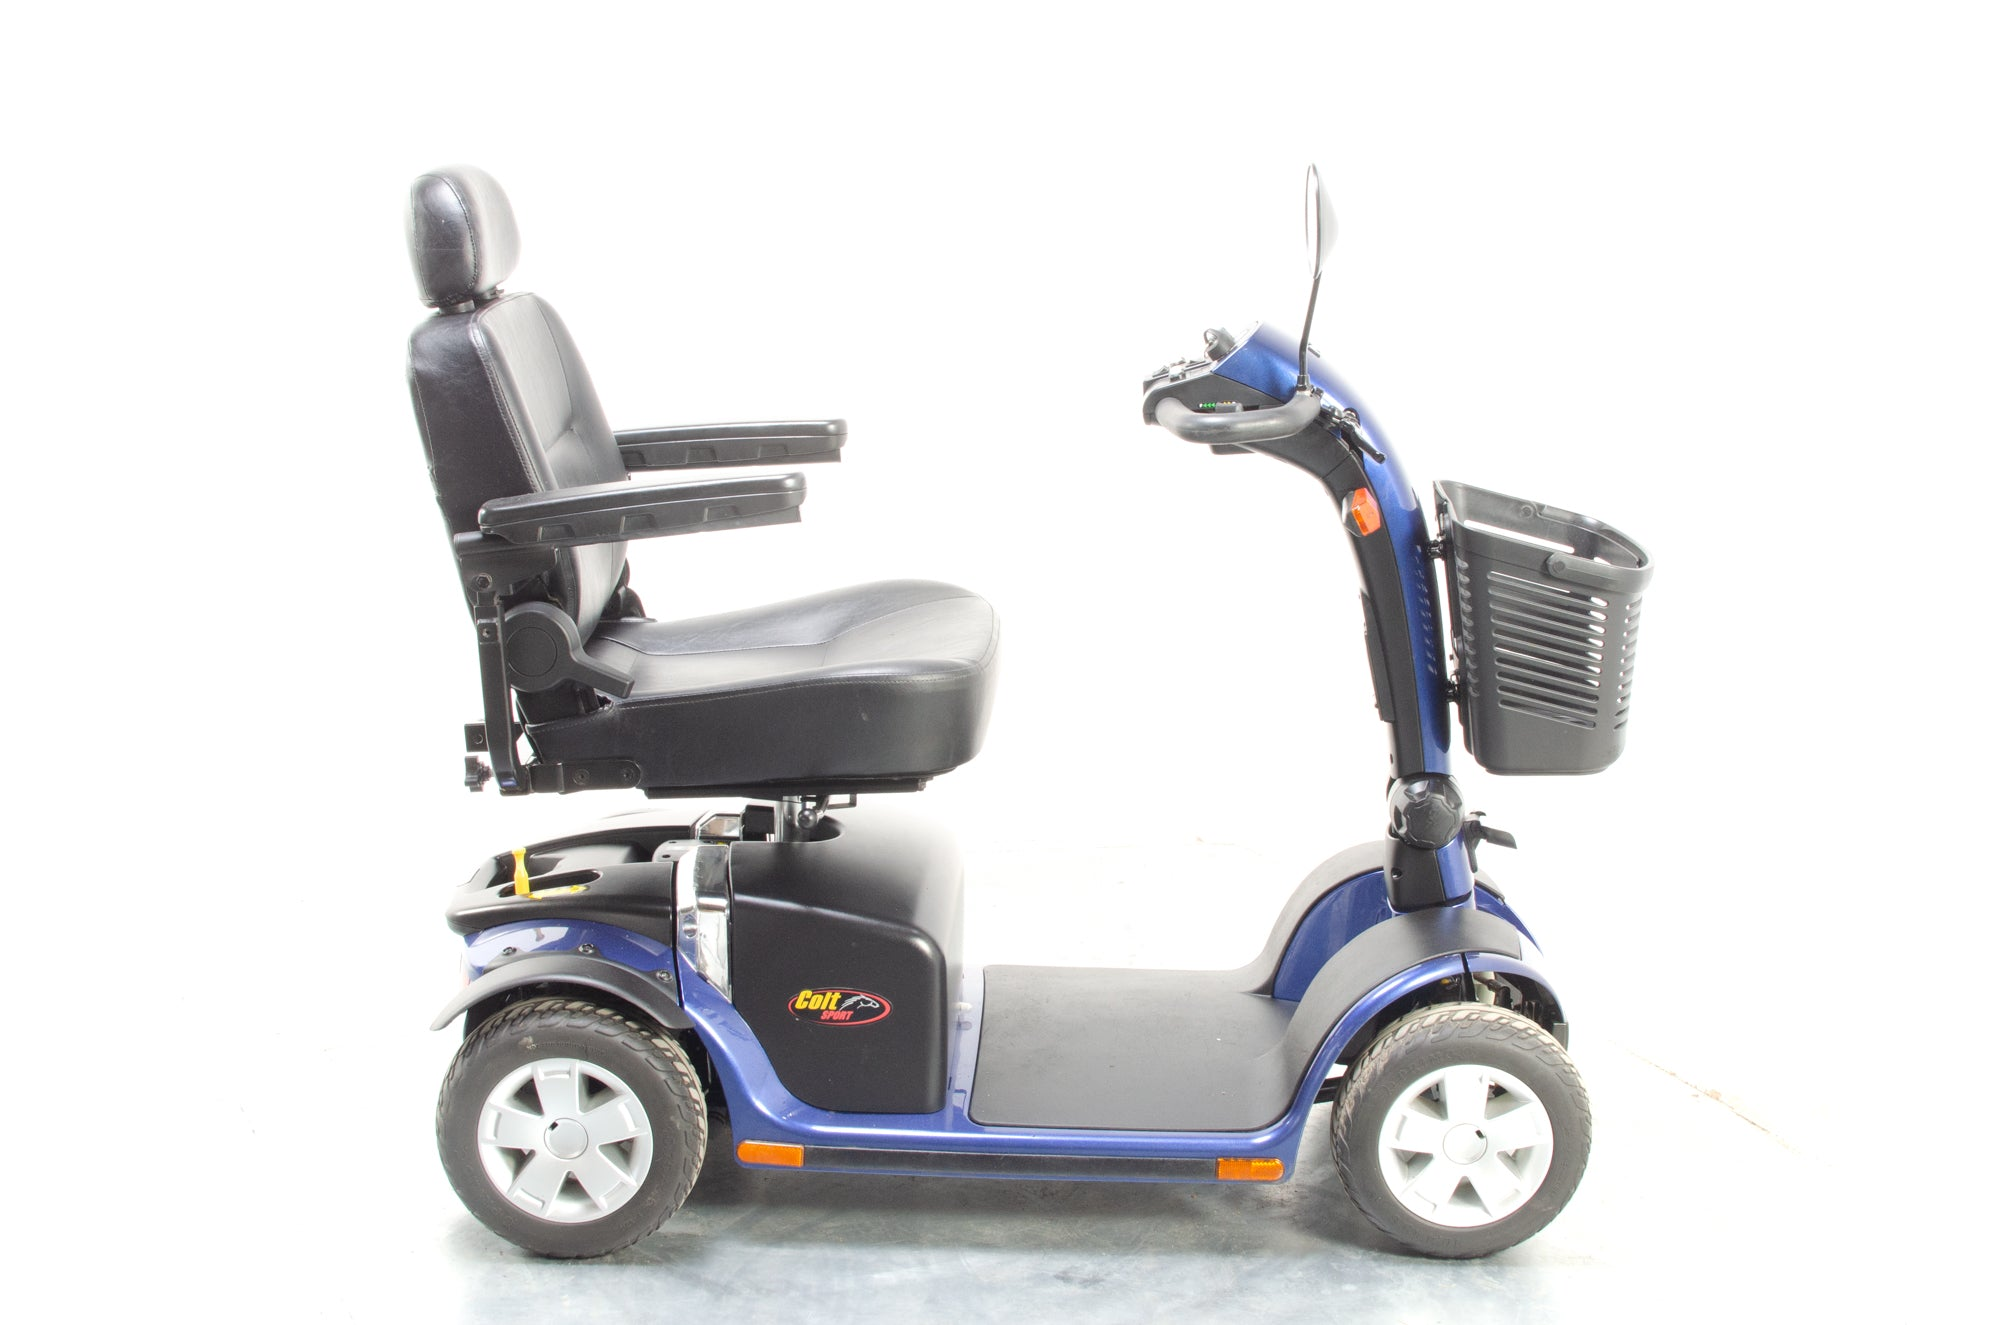 Pride Colt Sport Electric Mobility Scooter 8mph Used Transportable Road Pavement